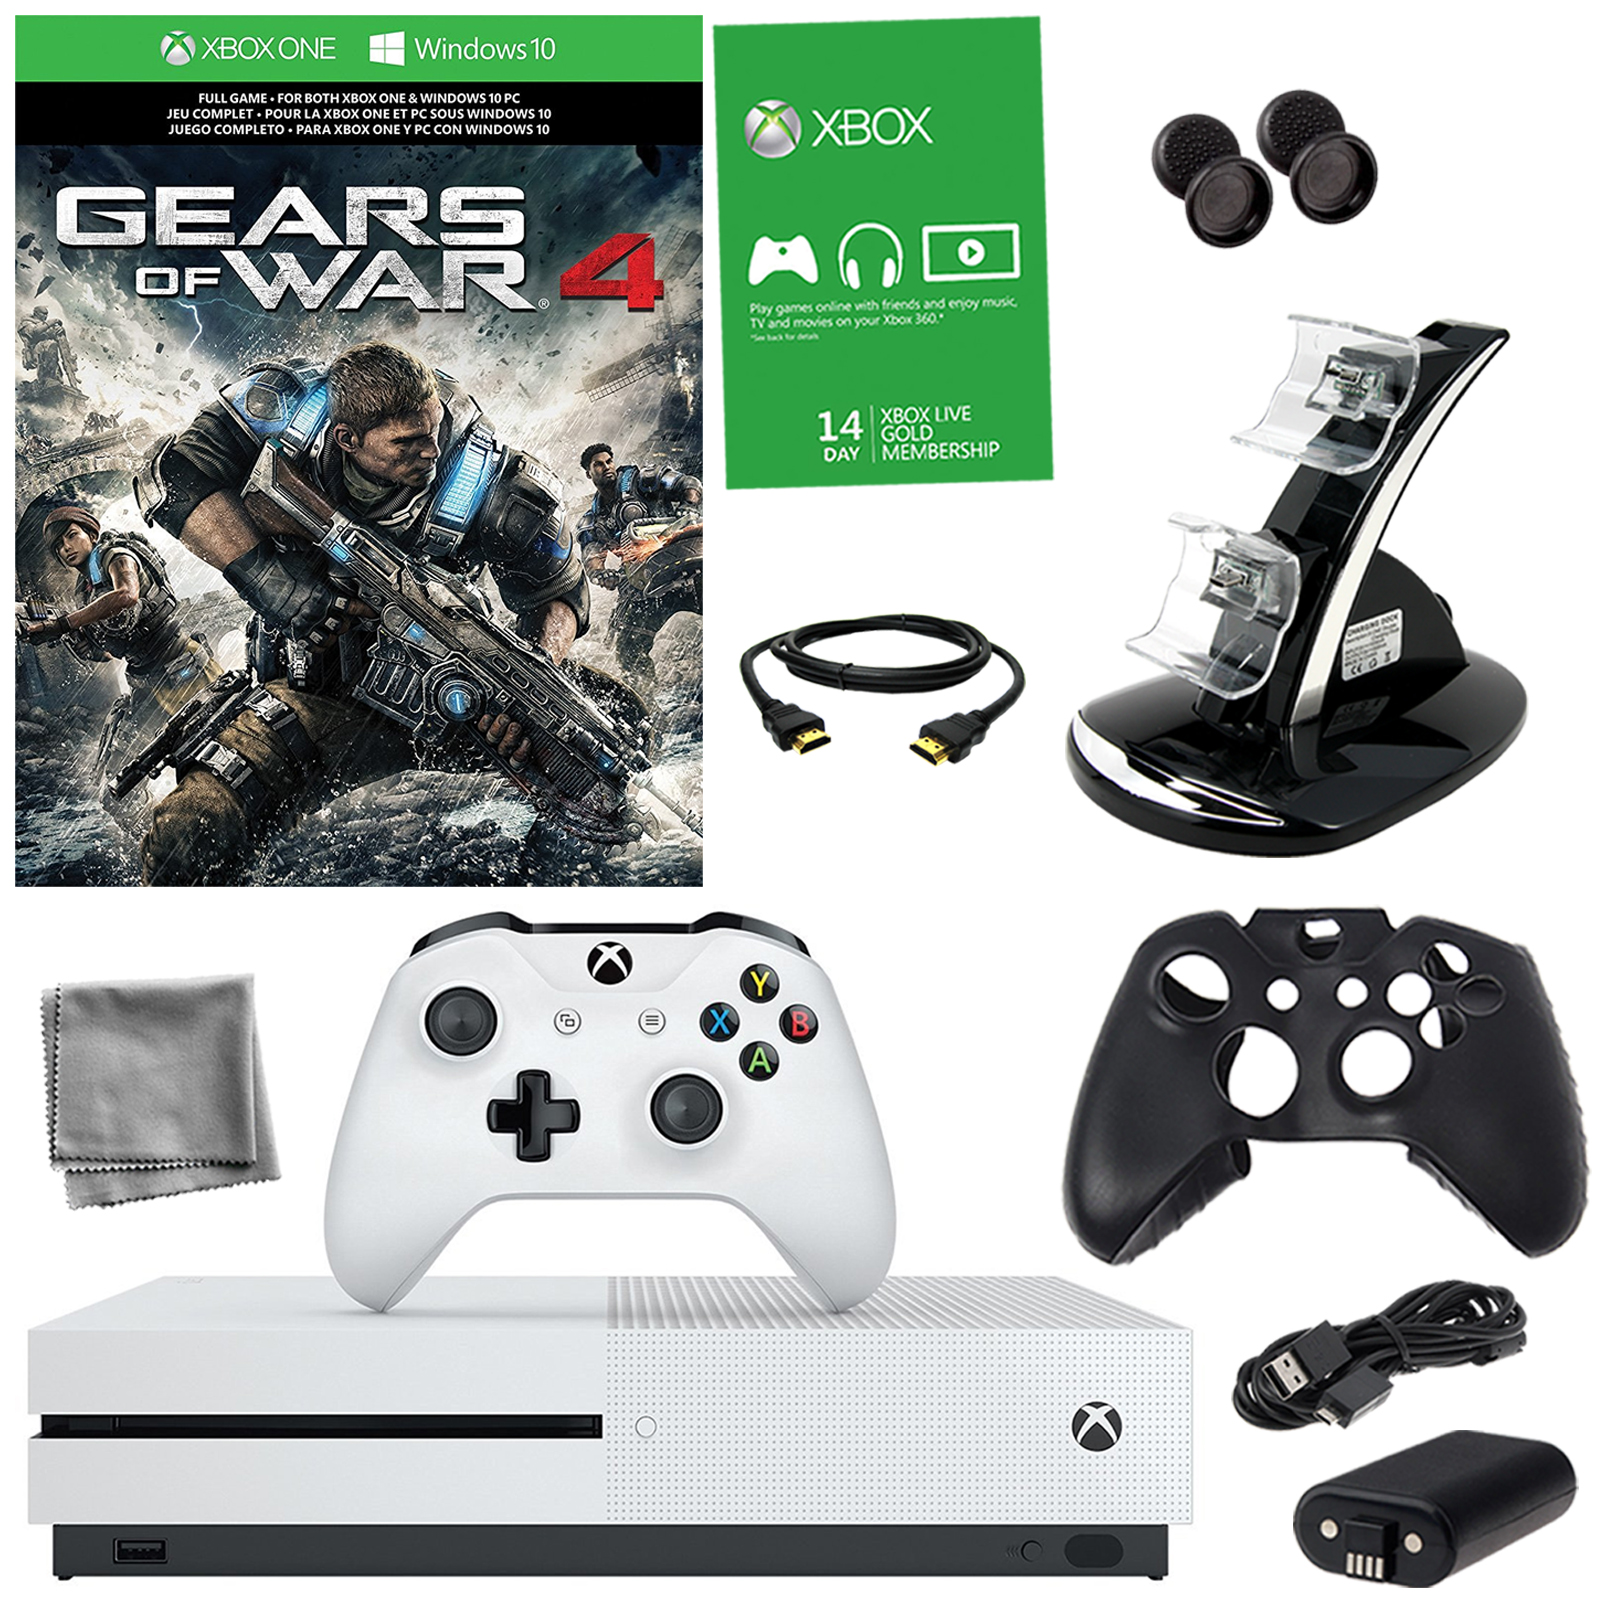 Xbox One S 1TB Gears of War 4 Bundle With 8 in 1 Kit En VeoyCompro